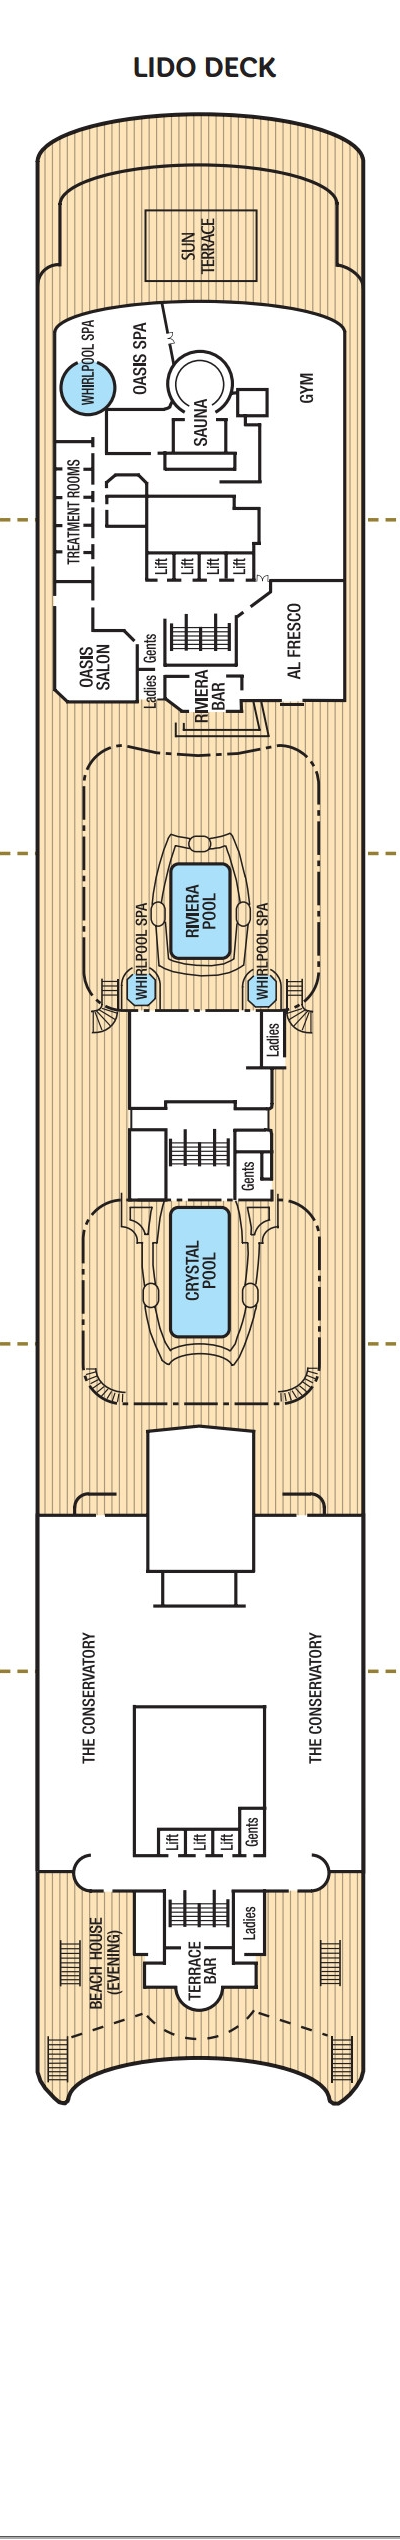 Oriana Lido Deck layout